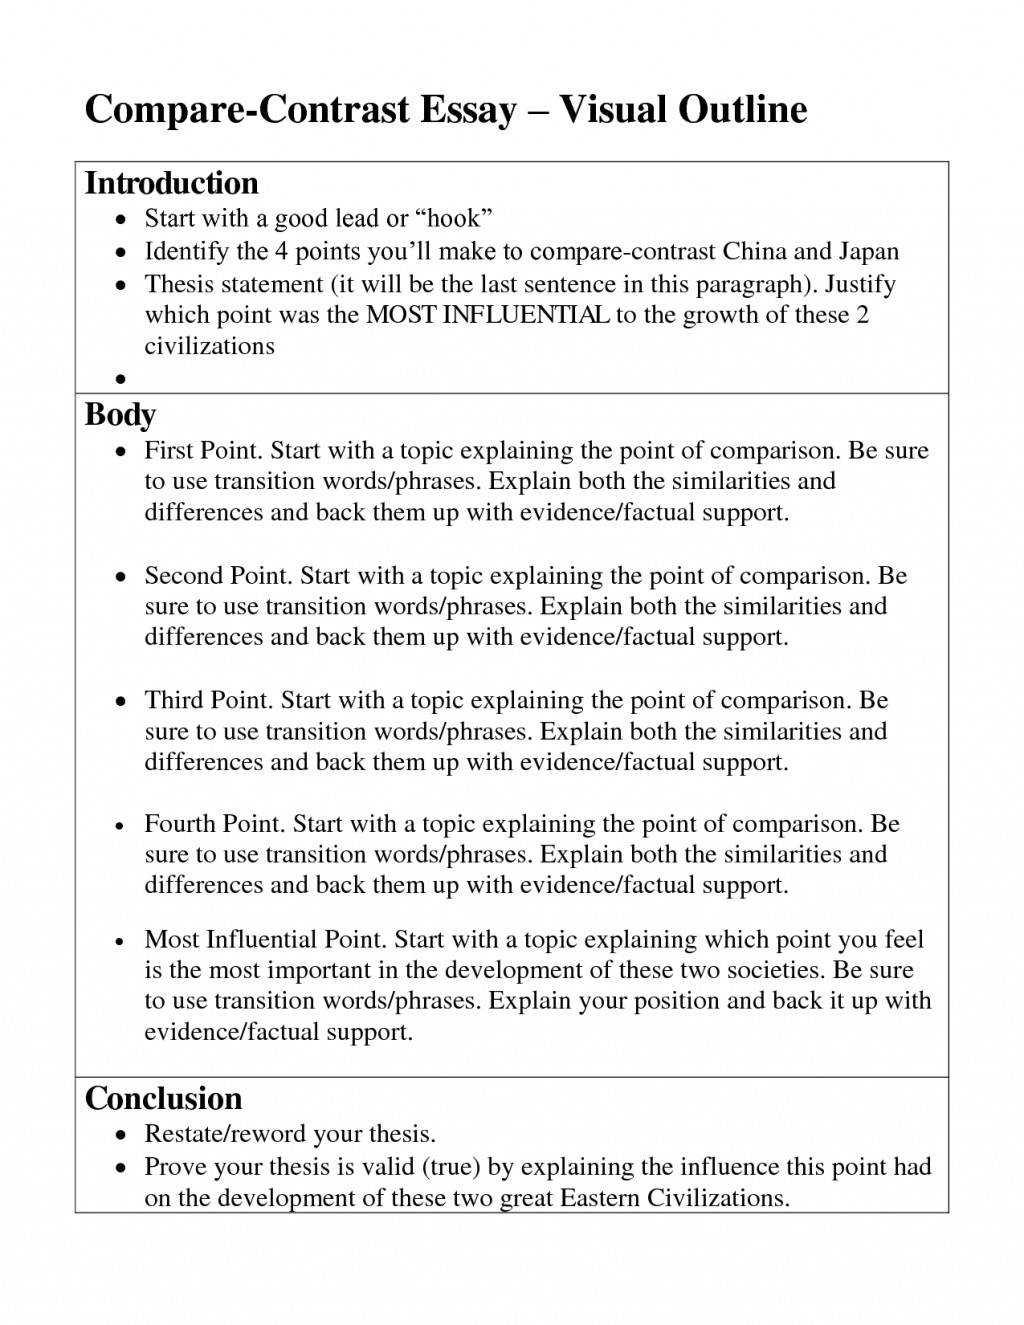 008 How To Write Researchs Best Research Papers A Paper - Pdf (2015) Conclusion An Introduction And Large